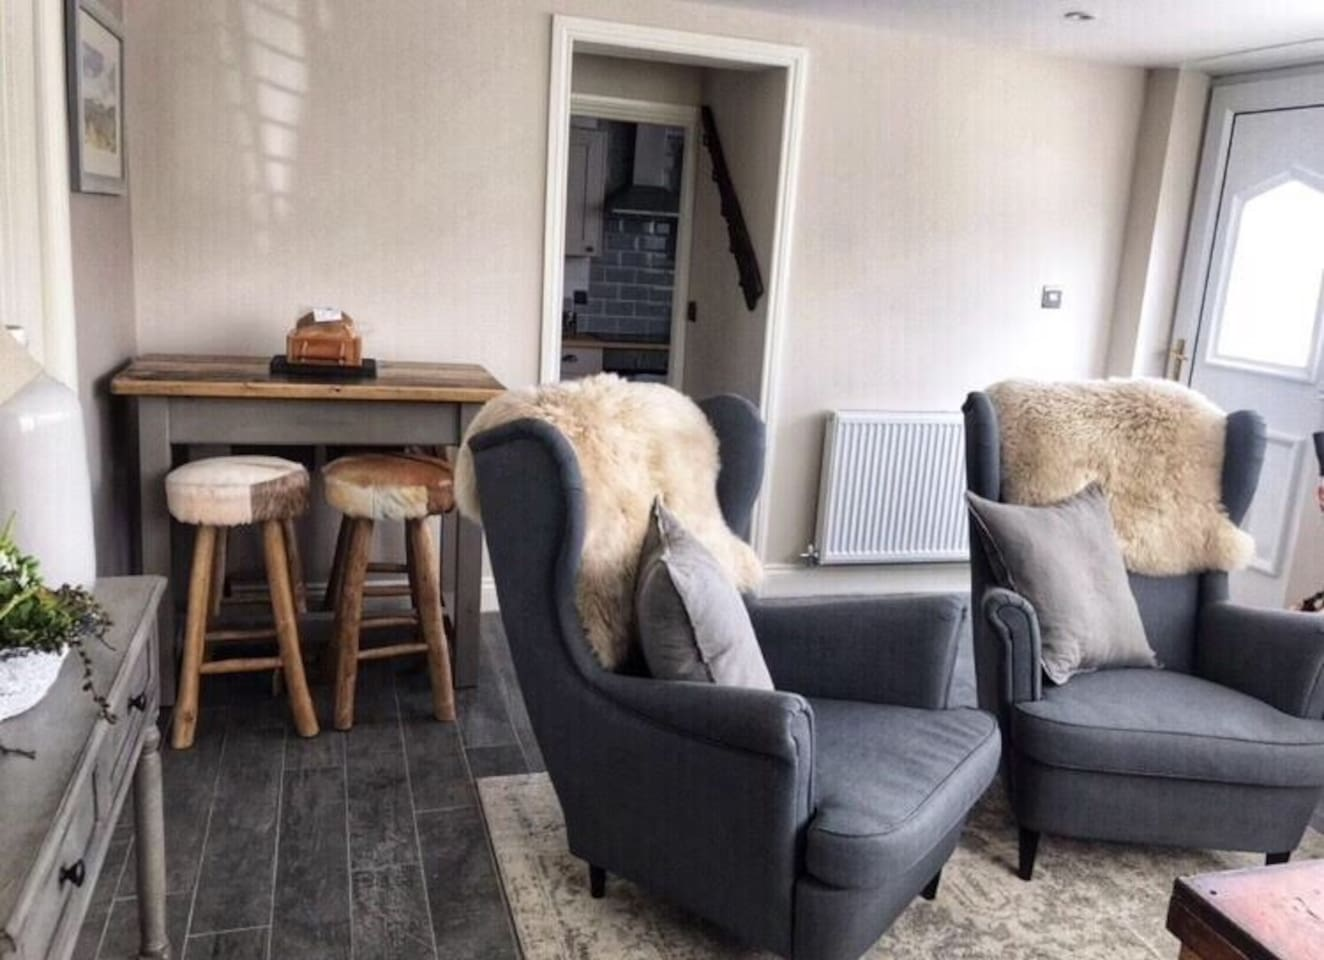 Relax in stylish comfortable surroundings